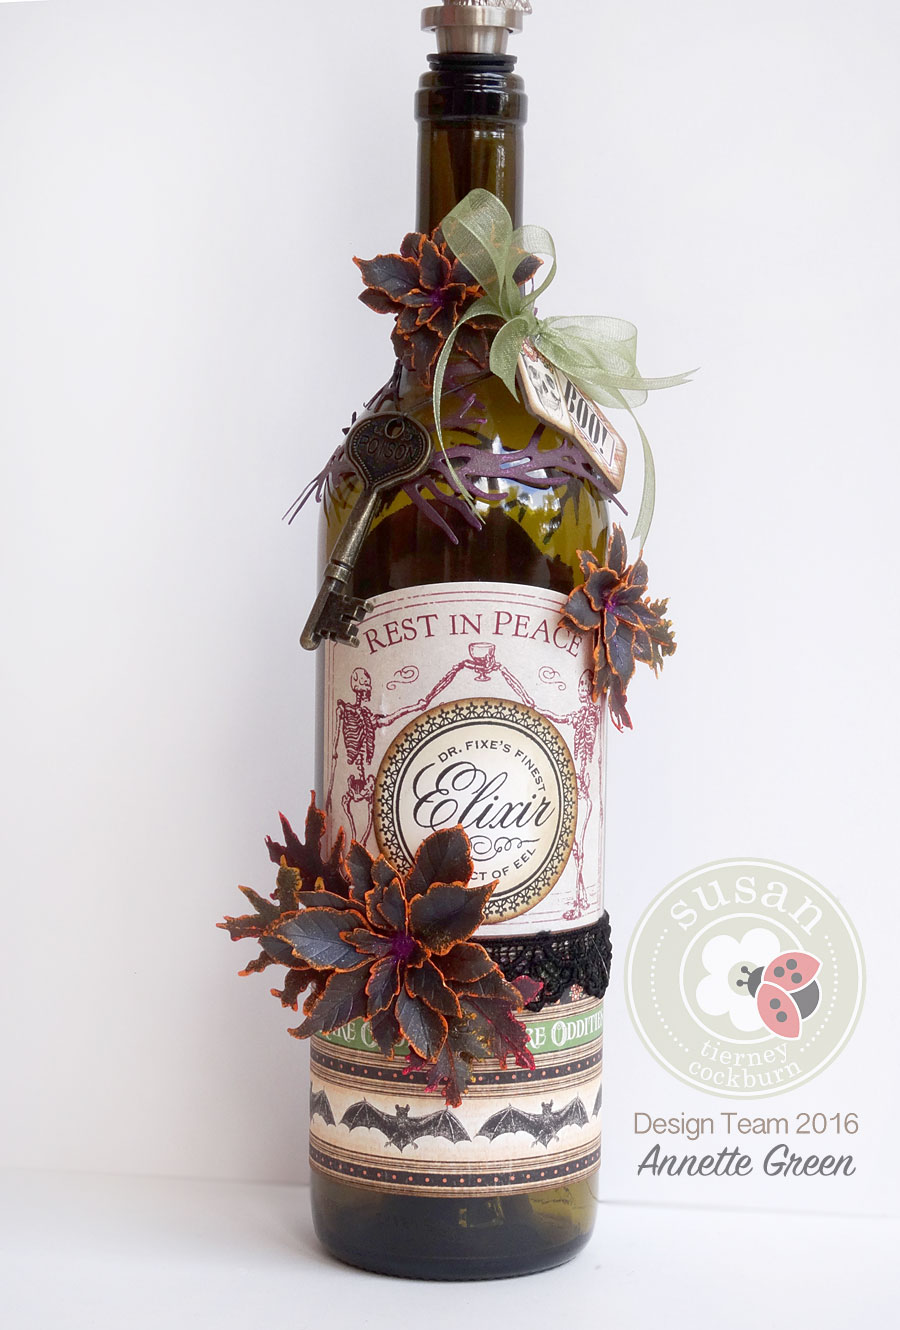 hallloween-altered-wine-by-bottle-annette-green-01